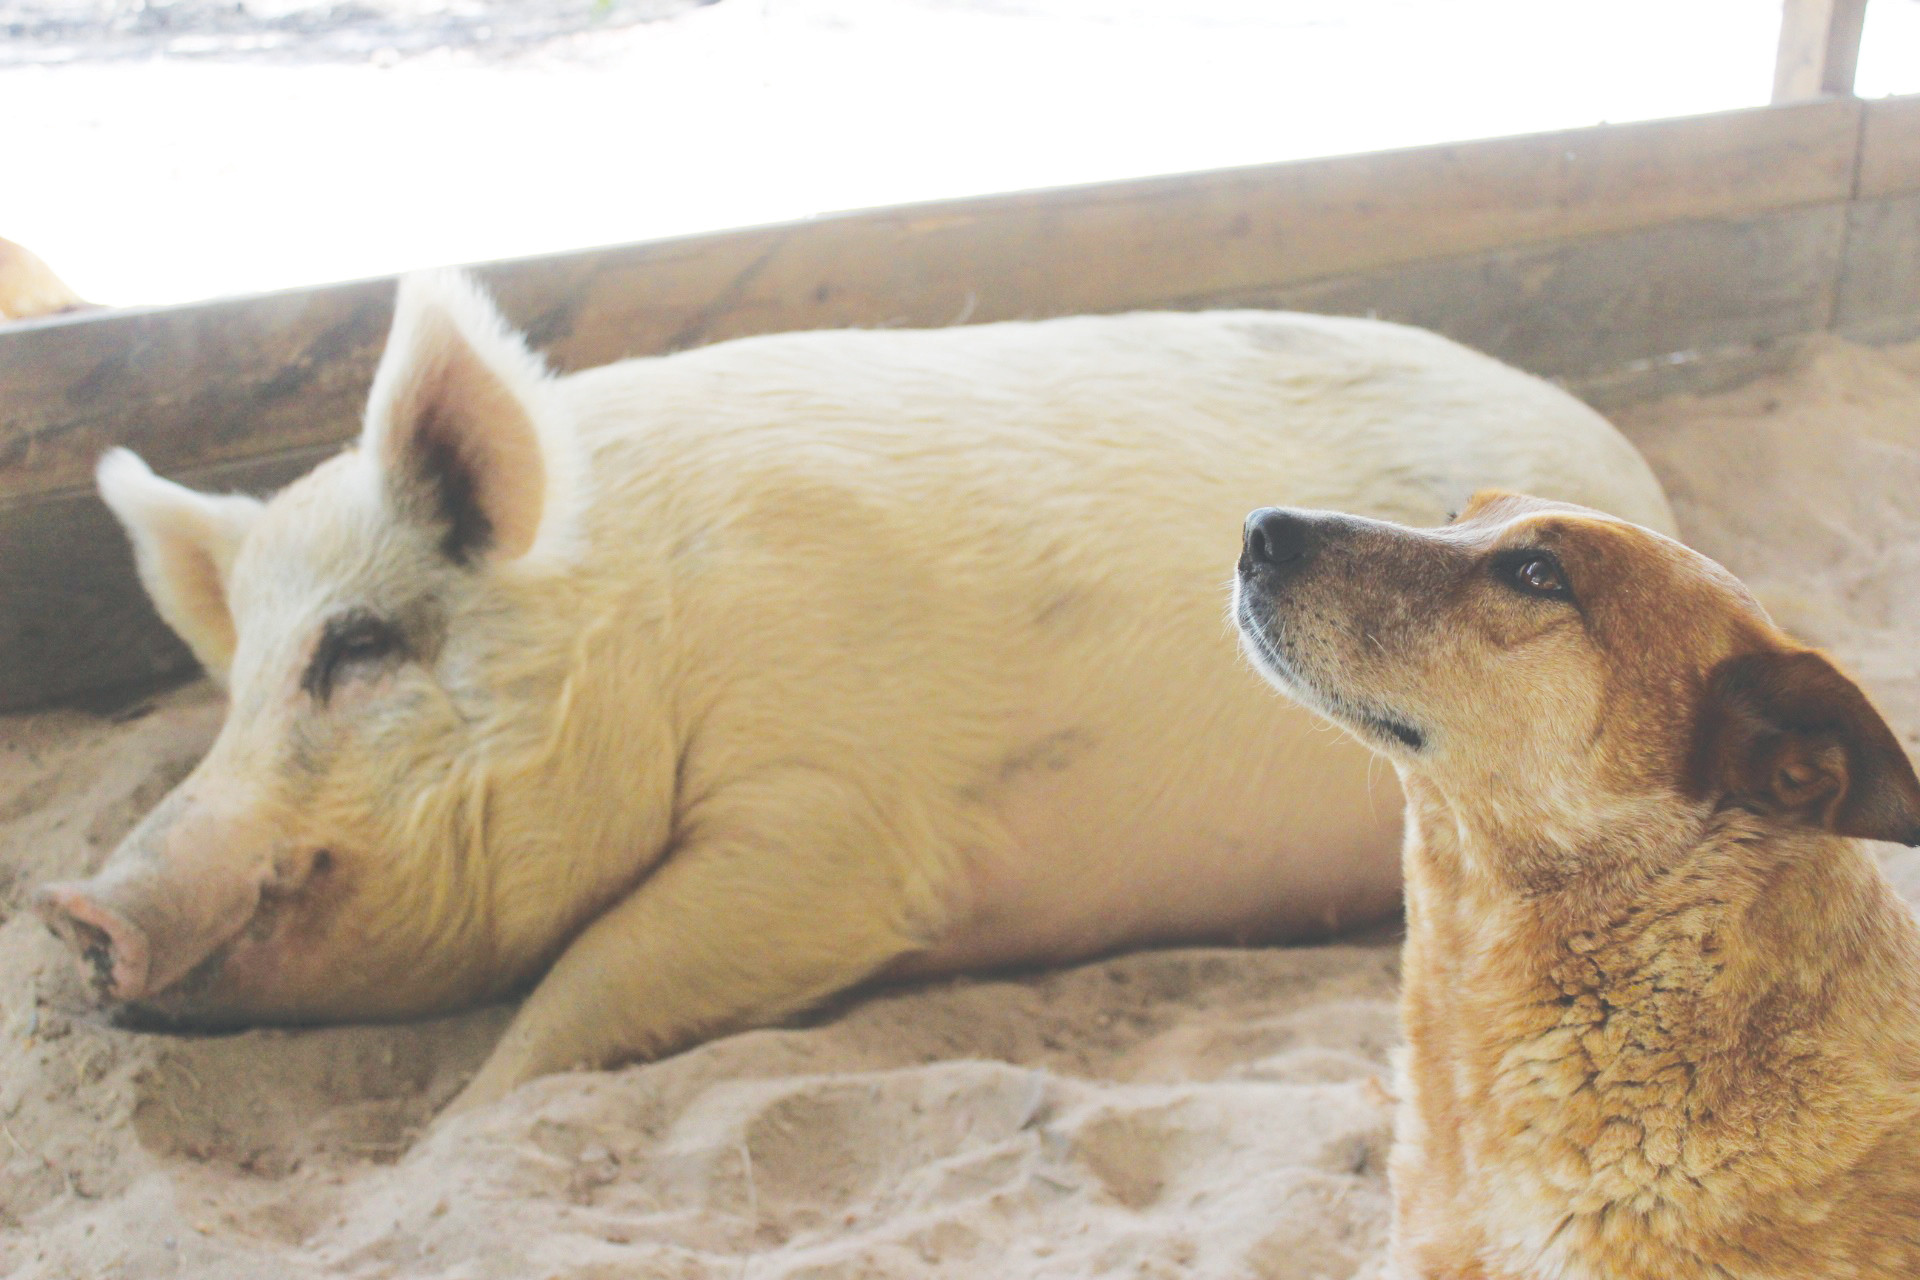 Lulu the pig and Temple the dog have been inseparable ever since Temple protected her from bullying when Lulu was just a piglet.